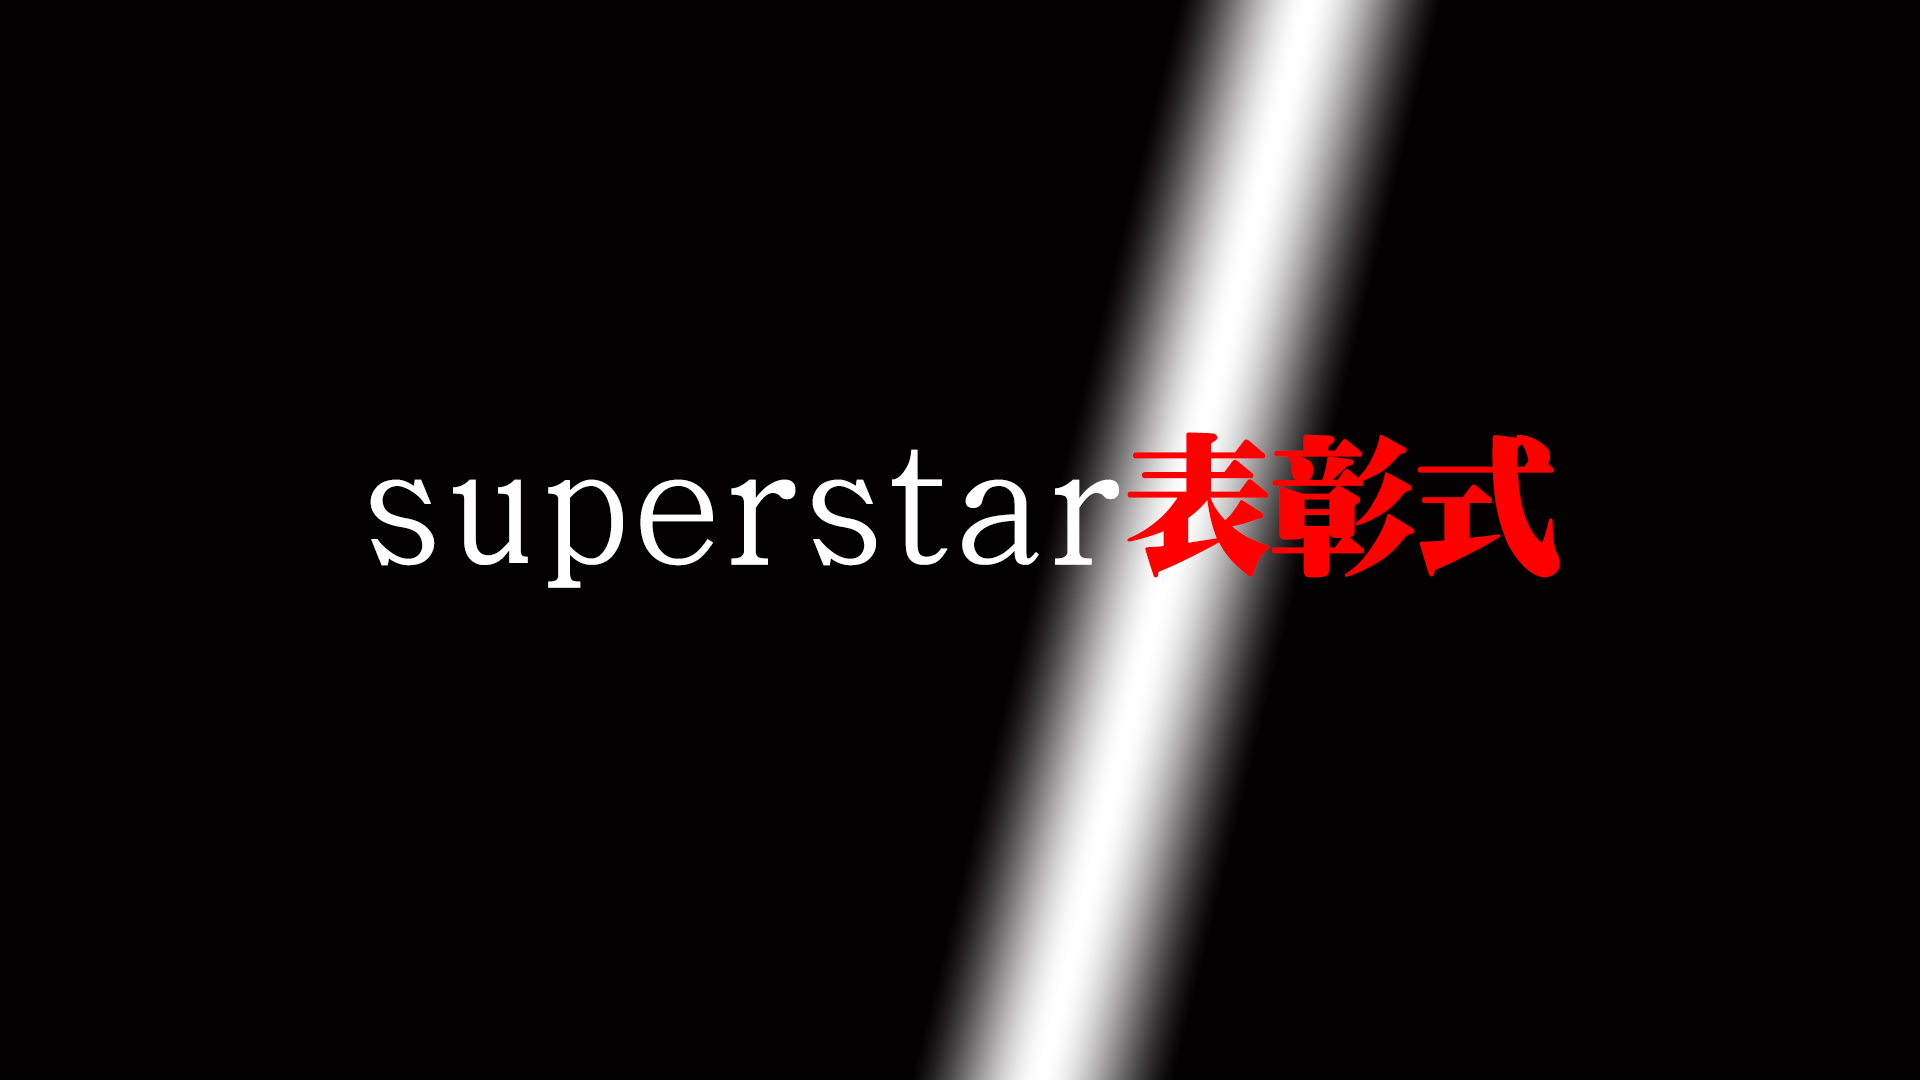 superstar新年会